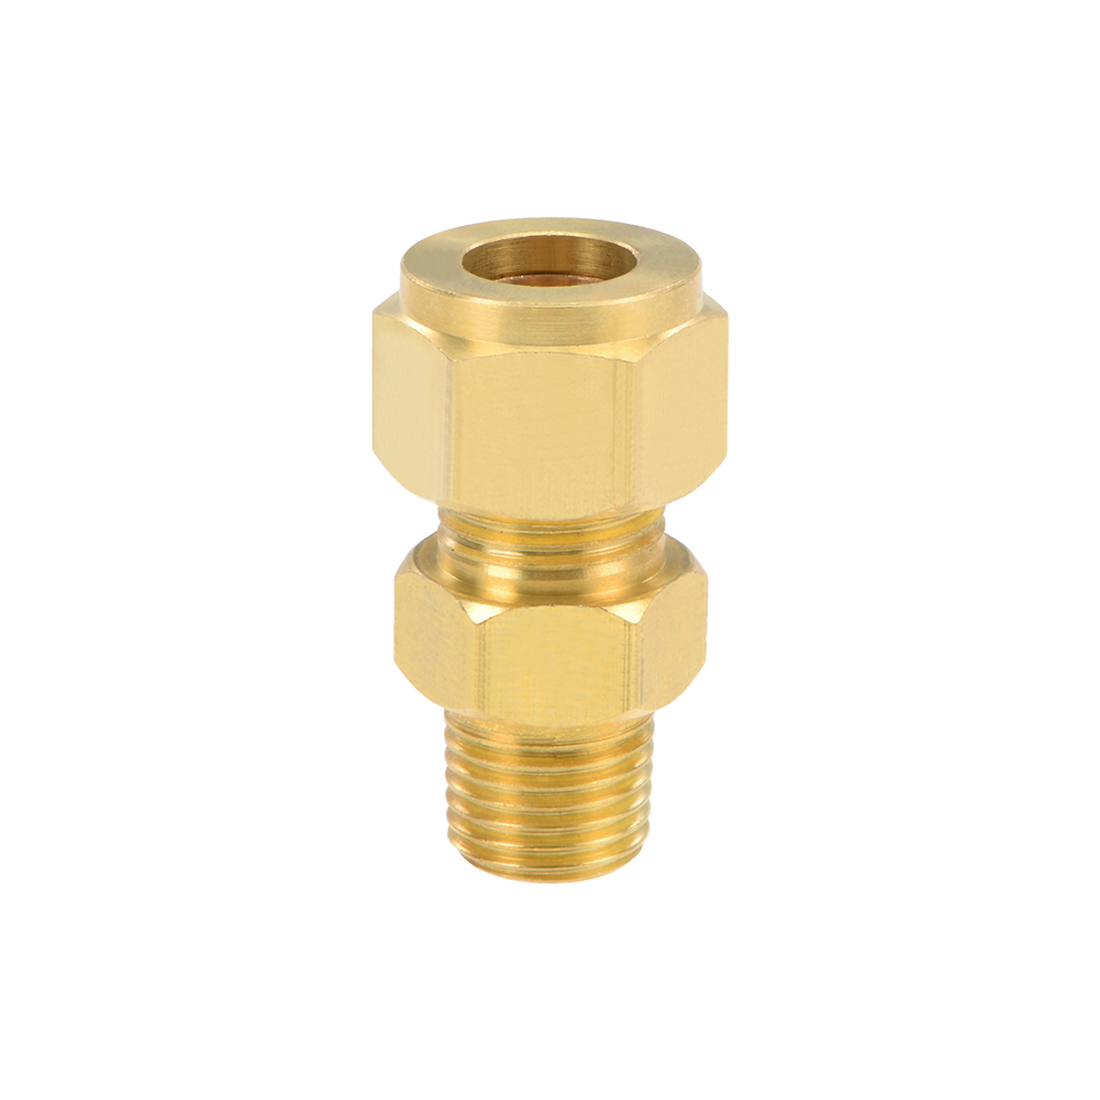 Brass Compression Tube Fitting 10mm OD 1/4 NPT Thread Pipe Adapter